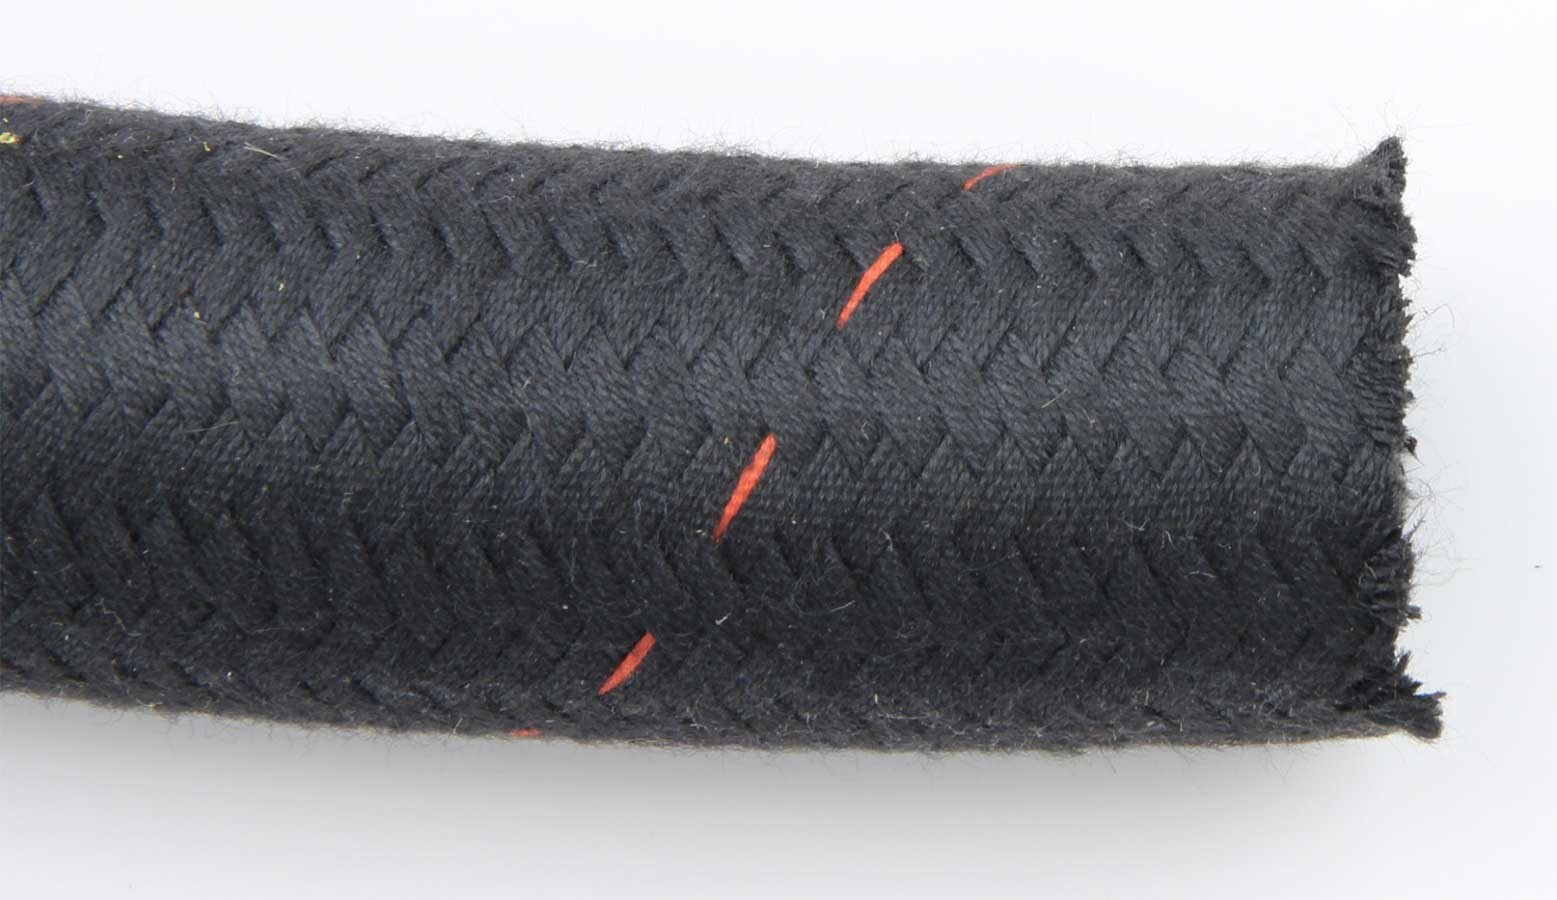 Aeroquip FCU1020 Hose, Startlite Racing Hose, 10 AN, 20 ft, Braided Nomex / Kevlar, AQP Smooth Bore, Black, Each